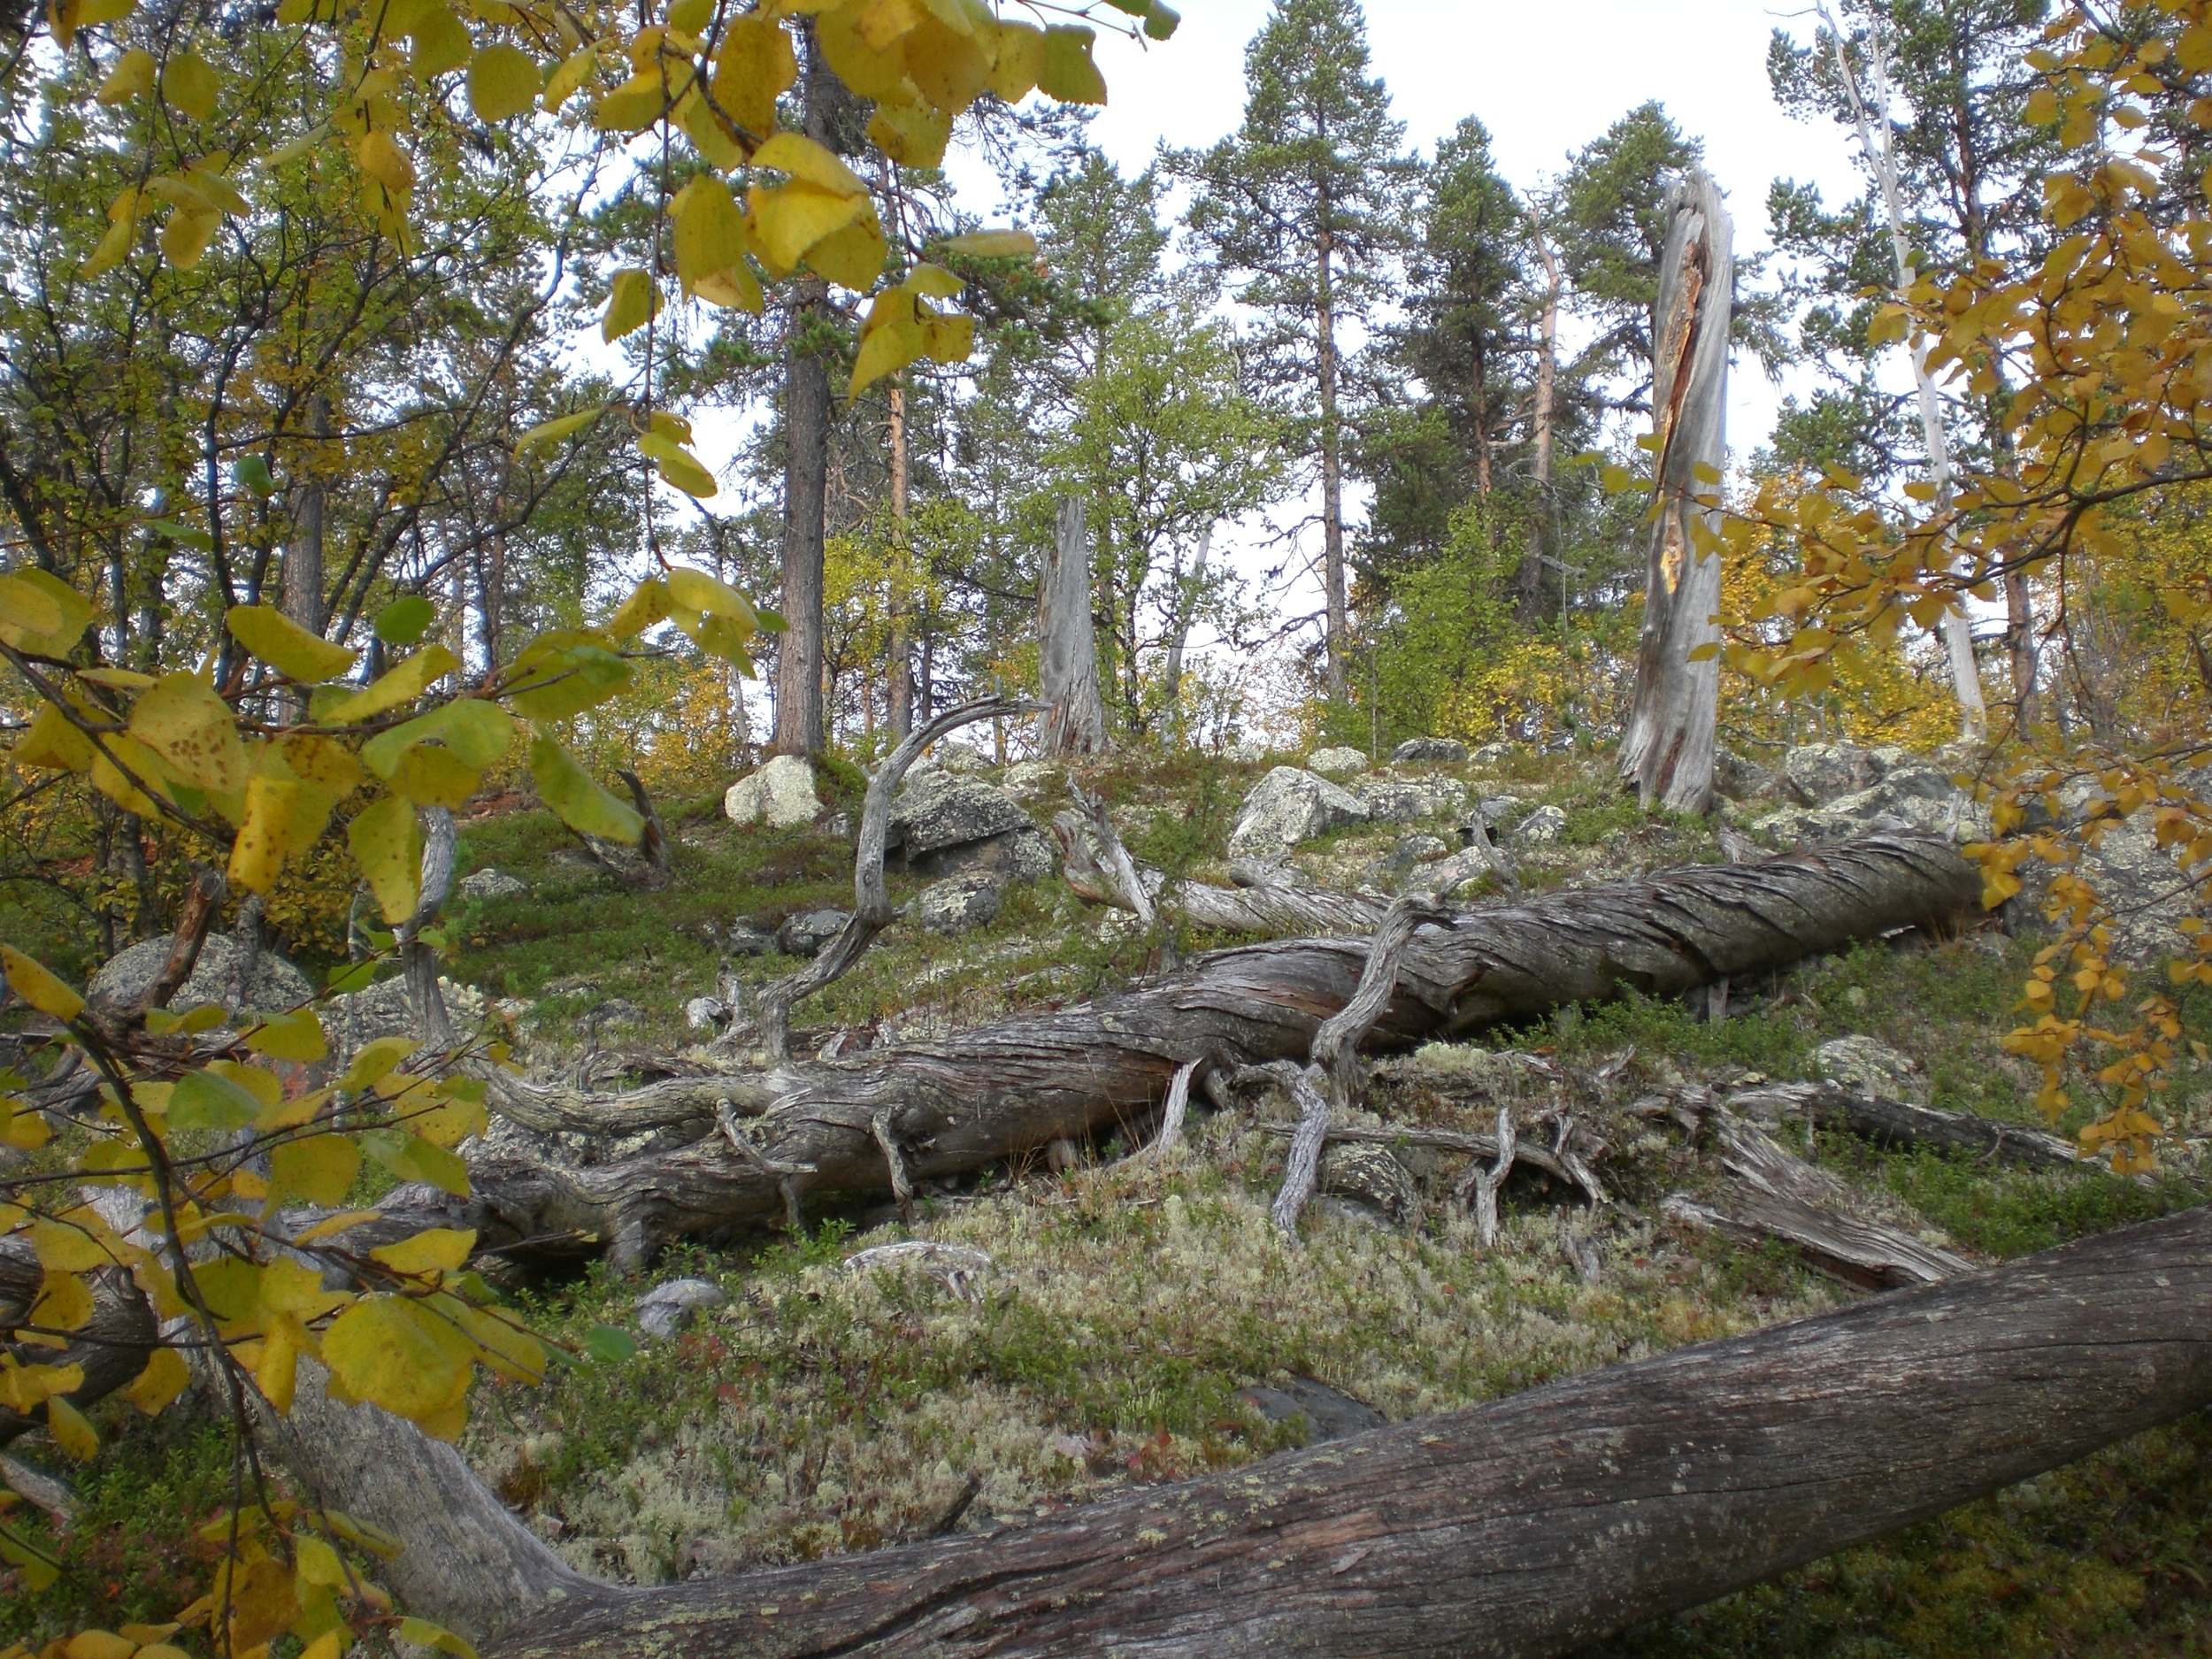 Dead wood in all stages of decay. From the old-growth forest at Basevuovdi in Finmark, the northernmost county of Norway, bordering to Russia.